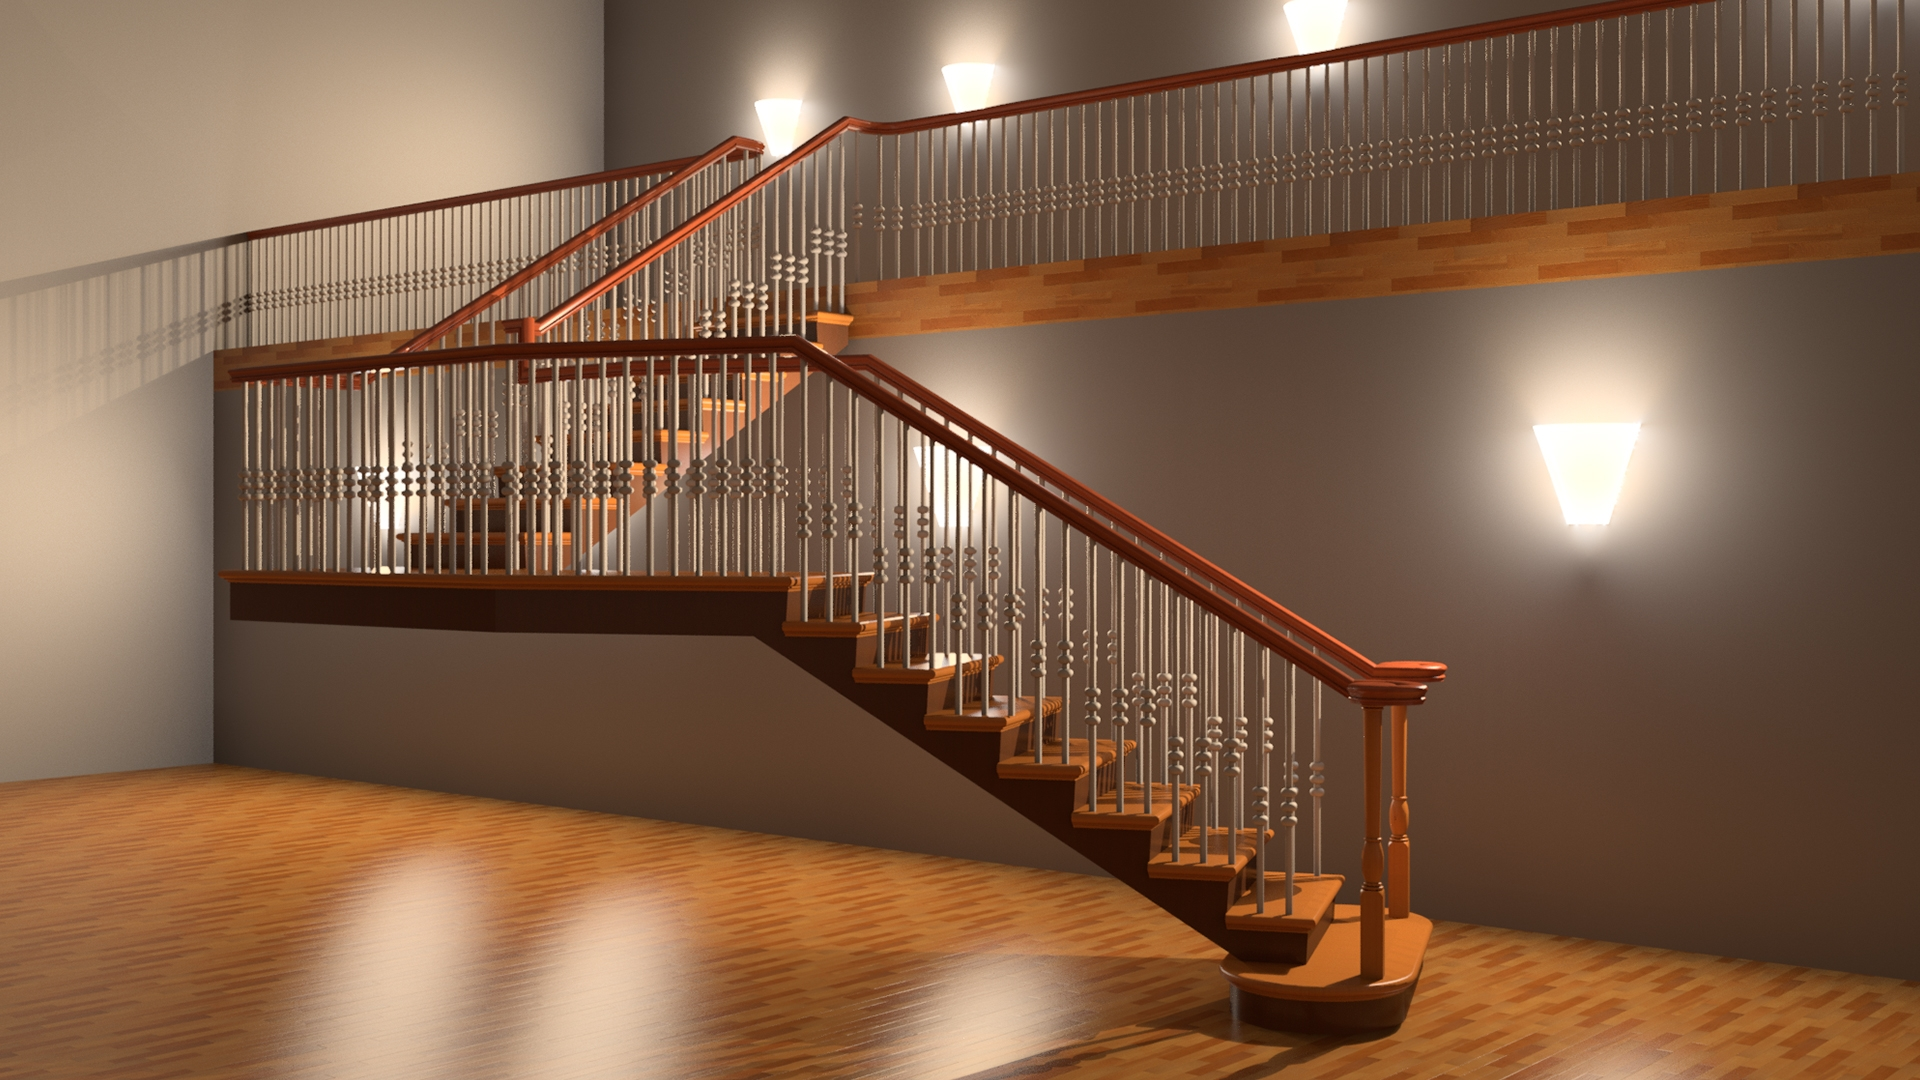 Adding A U Shaped Winder And Spiral Stair   Converting Spiral Staircase To Straight   Wood   House   Stair Case   U Shaped   Loft Conversion